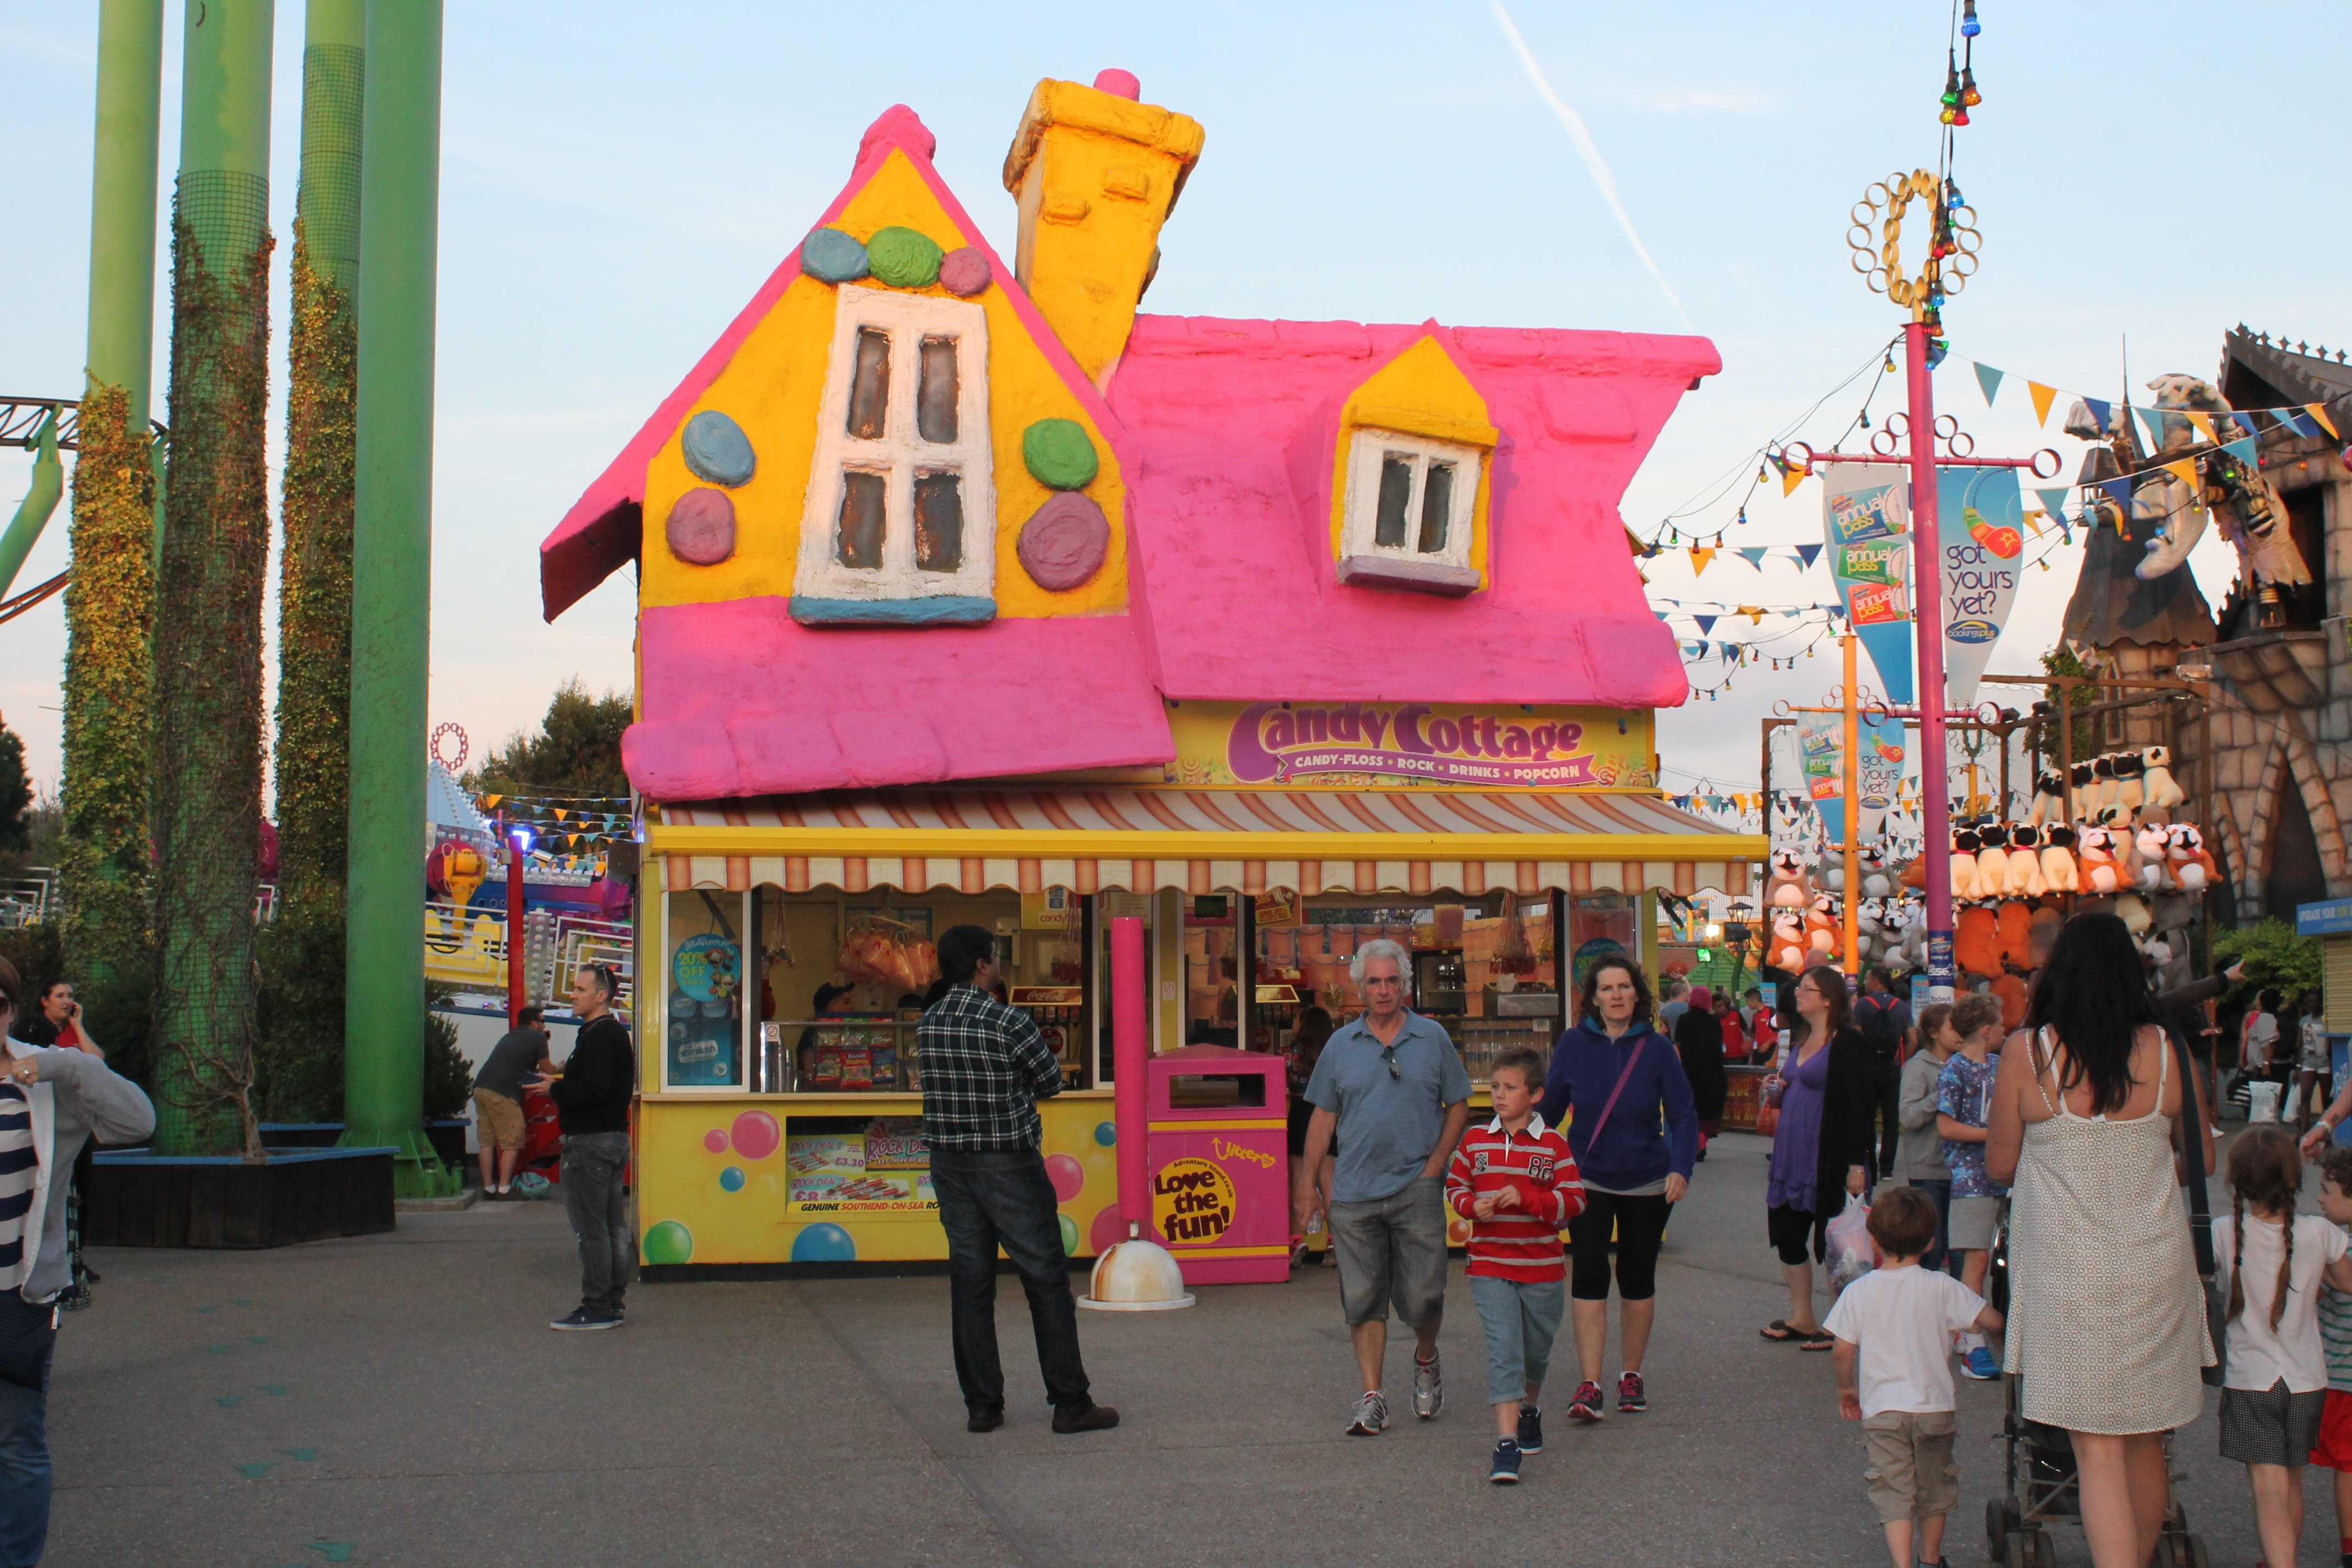 Longer Weekend Invention adventure island southend